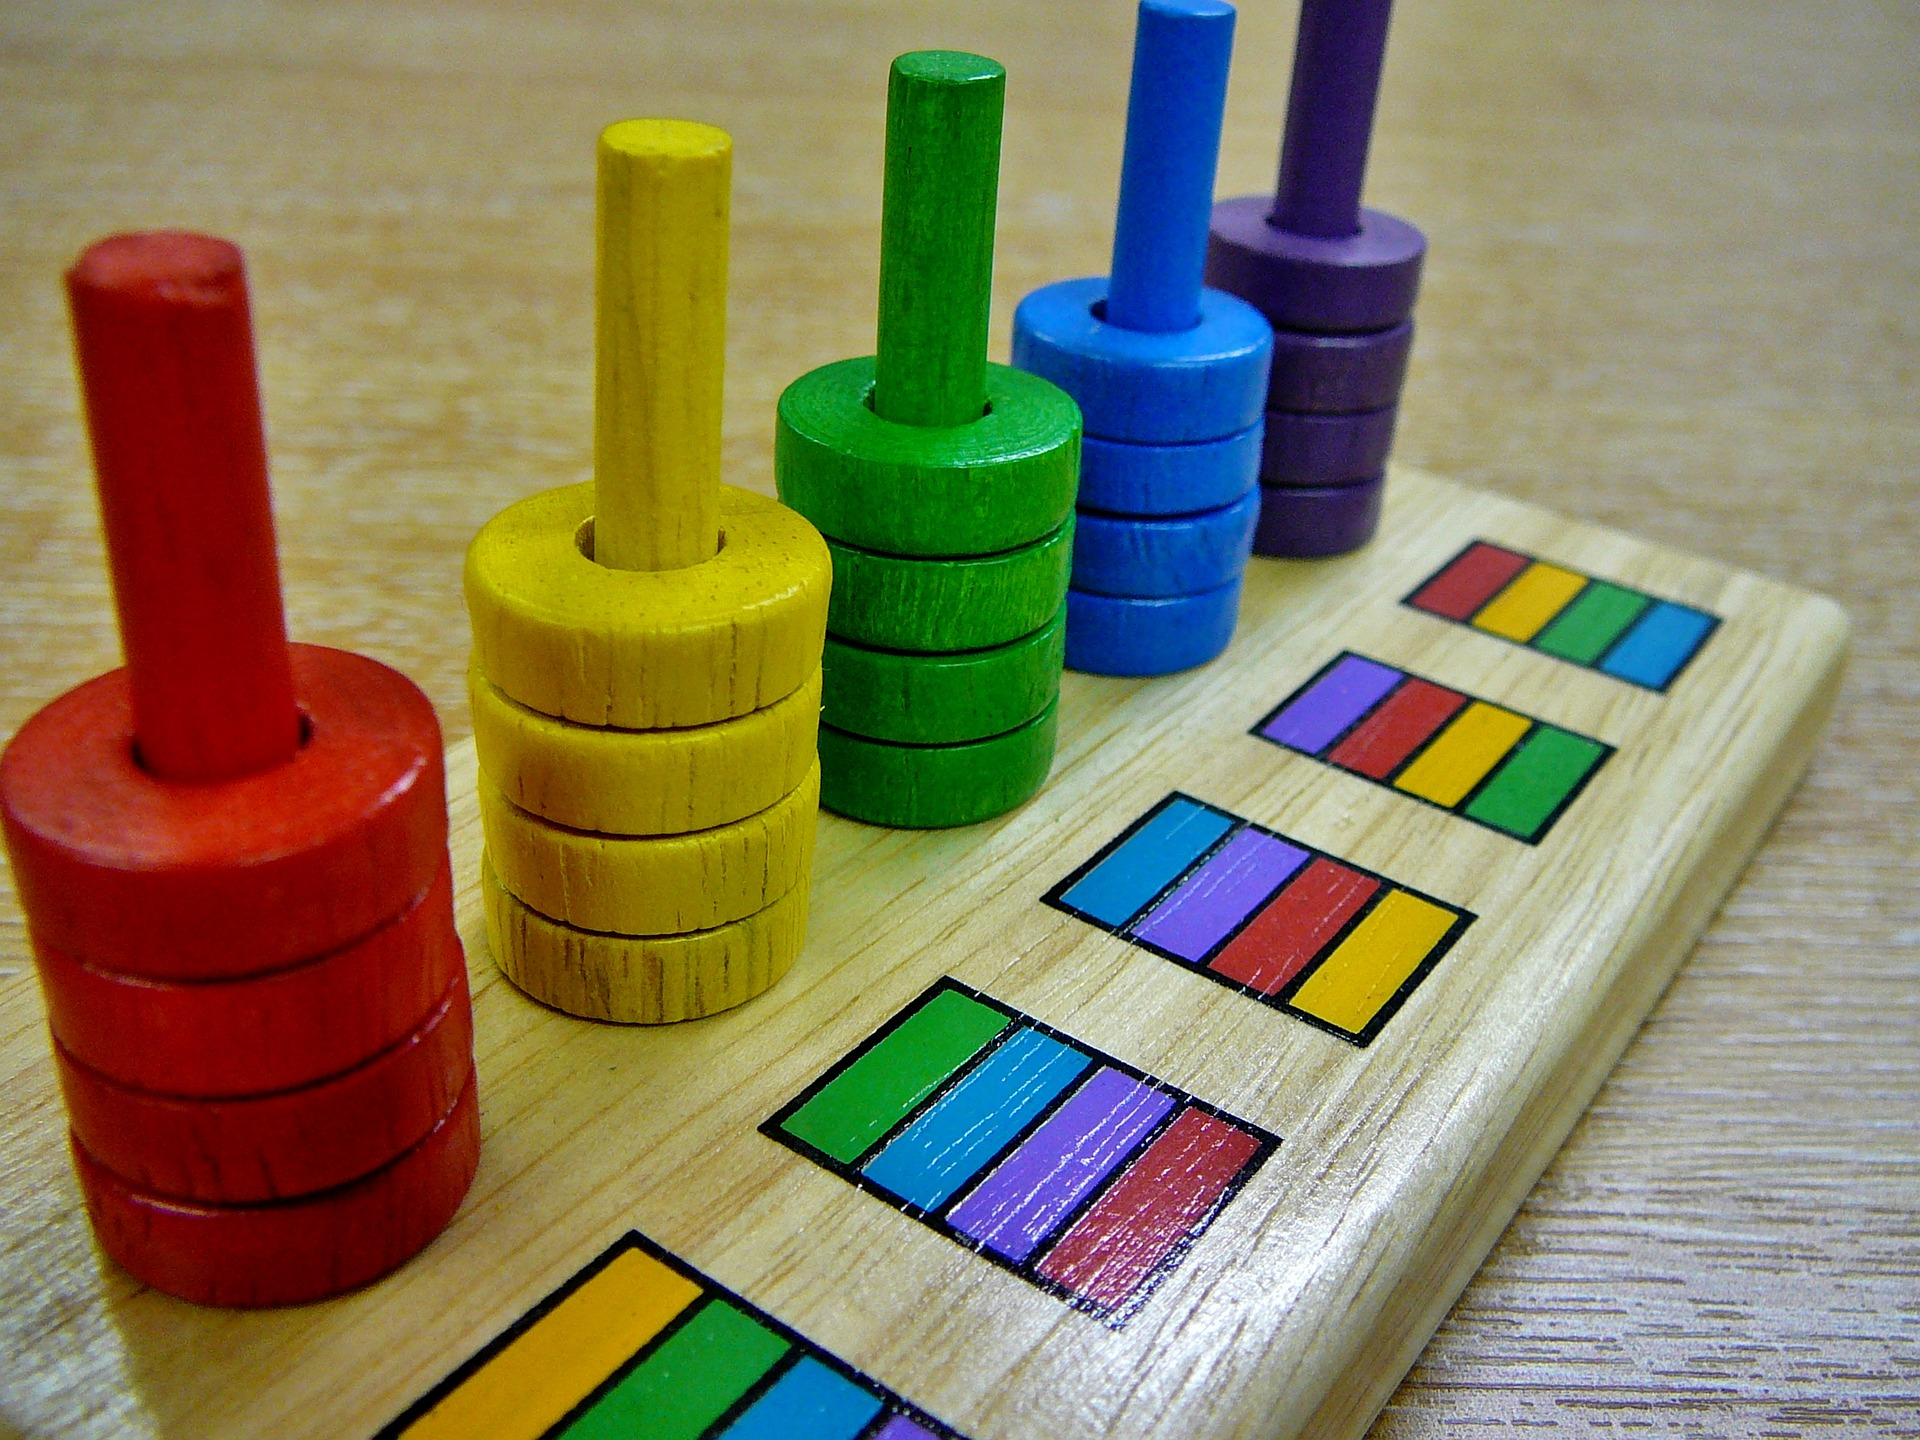 Colored stacking disks logic puzzle